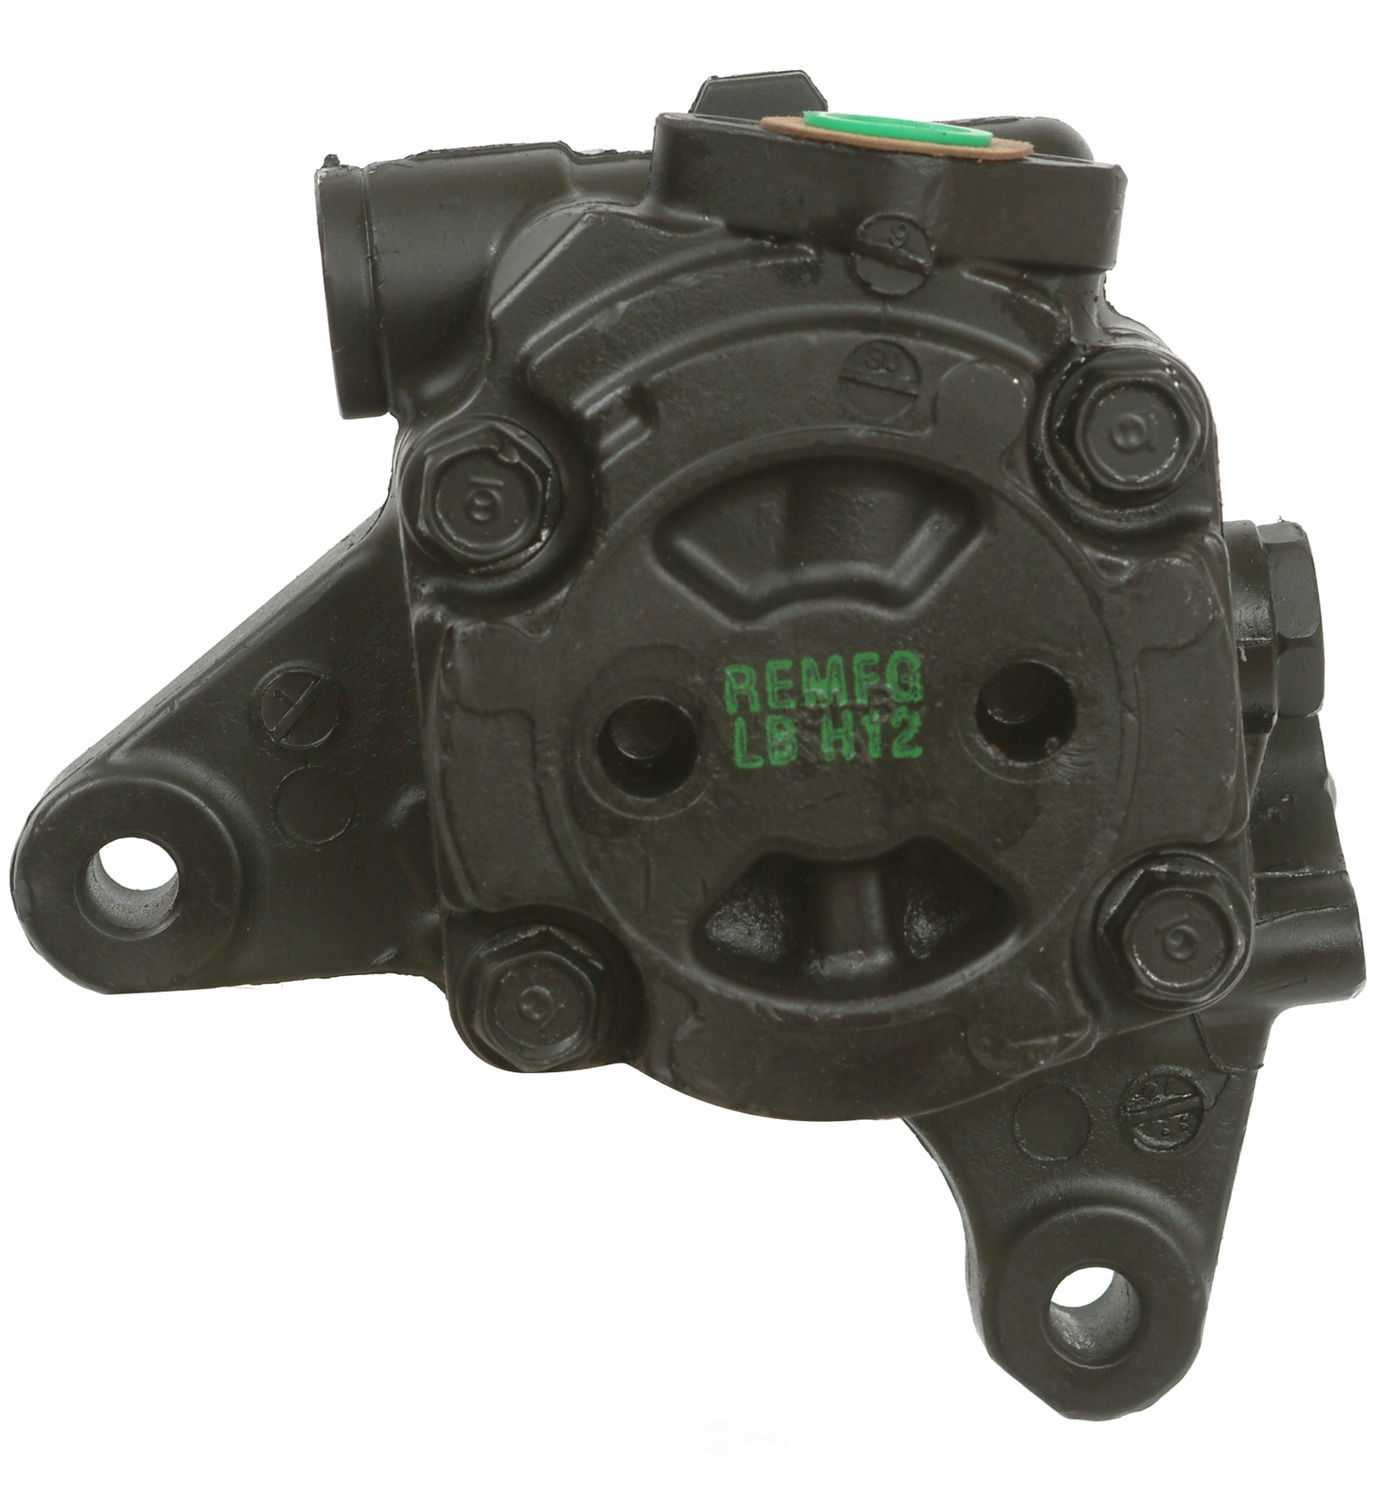 CARDONE / A-1 CARDONE - Reman A-1 Cardone Power Steering Pump - A1C 21-116